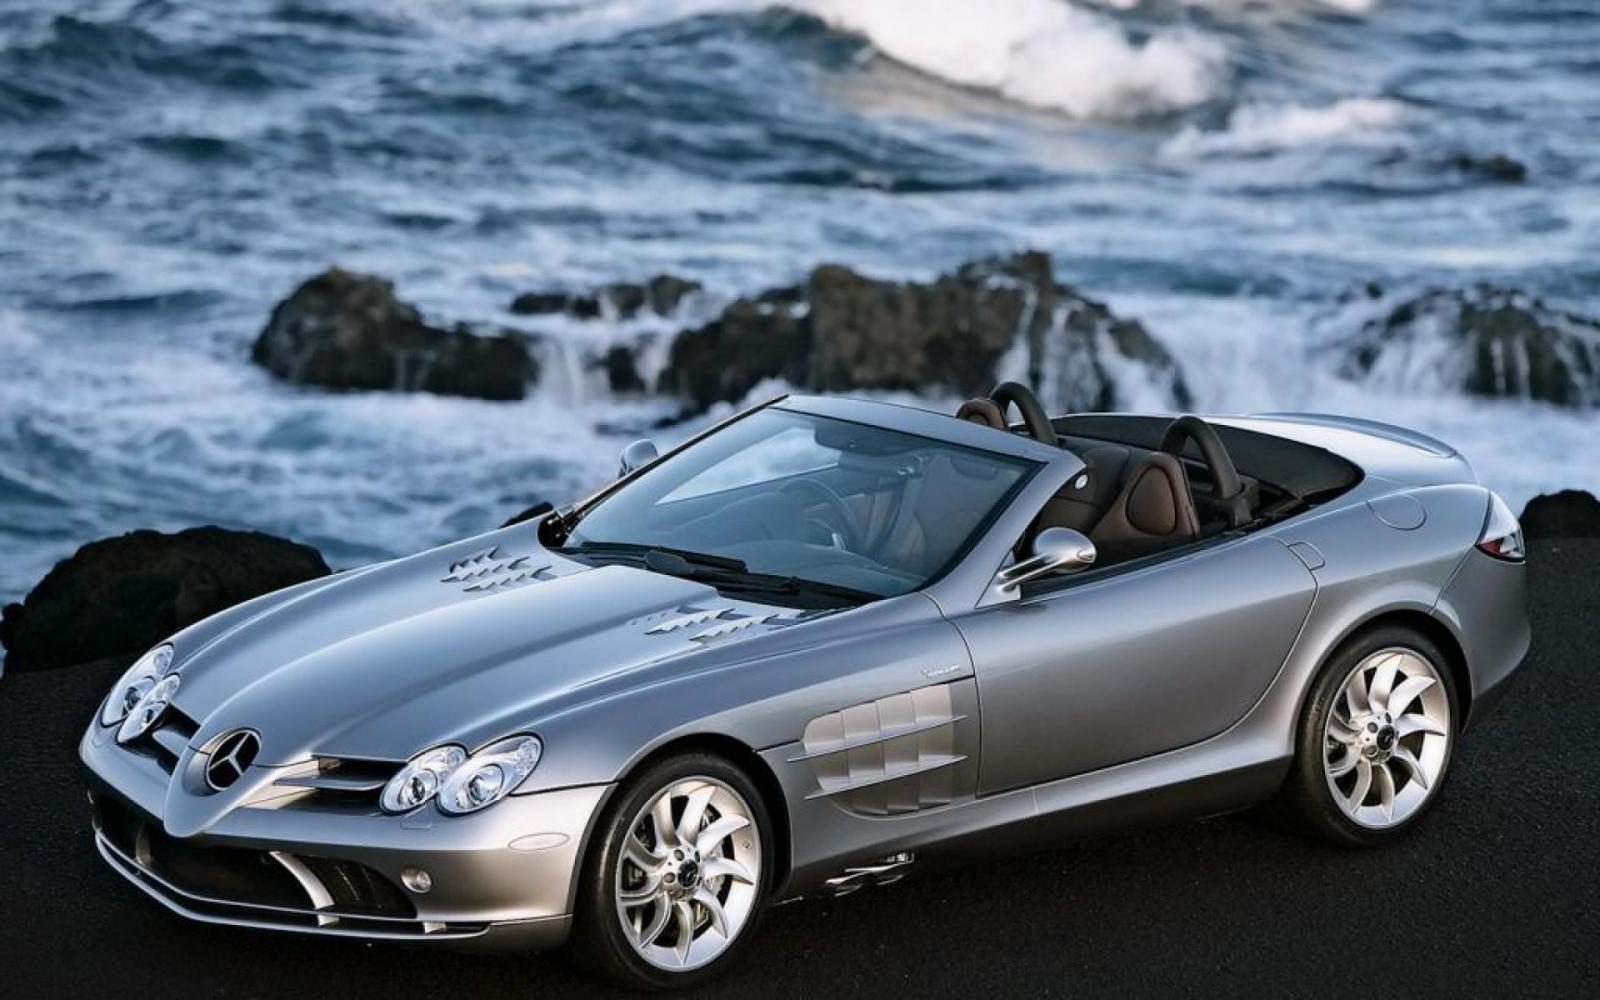 2008 mercedes benz slr mclaren information and photos. Black Bedroom Furniture Sets. Home Design Ideas